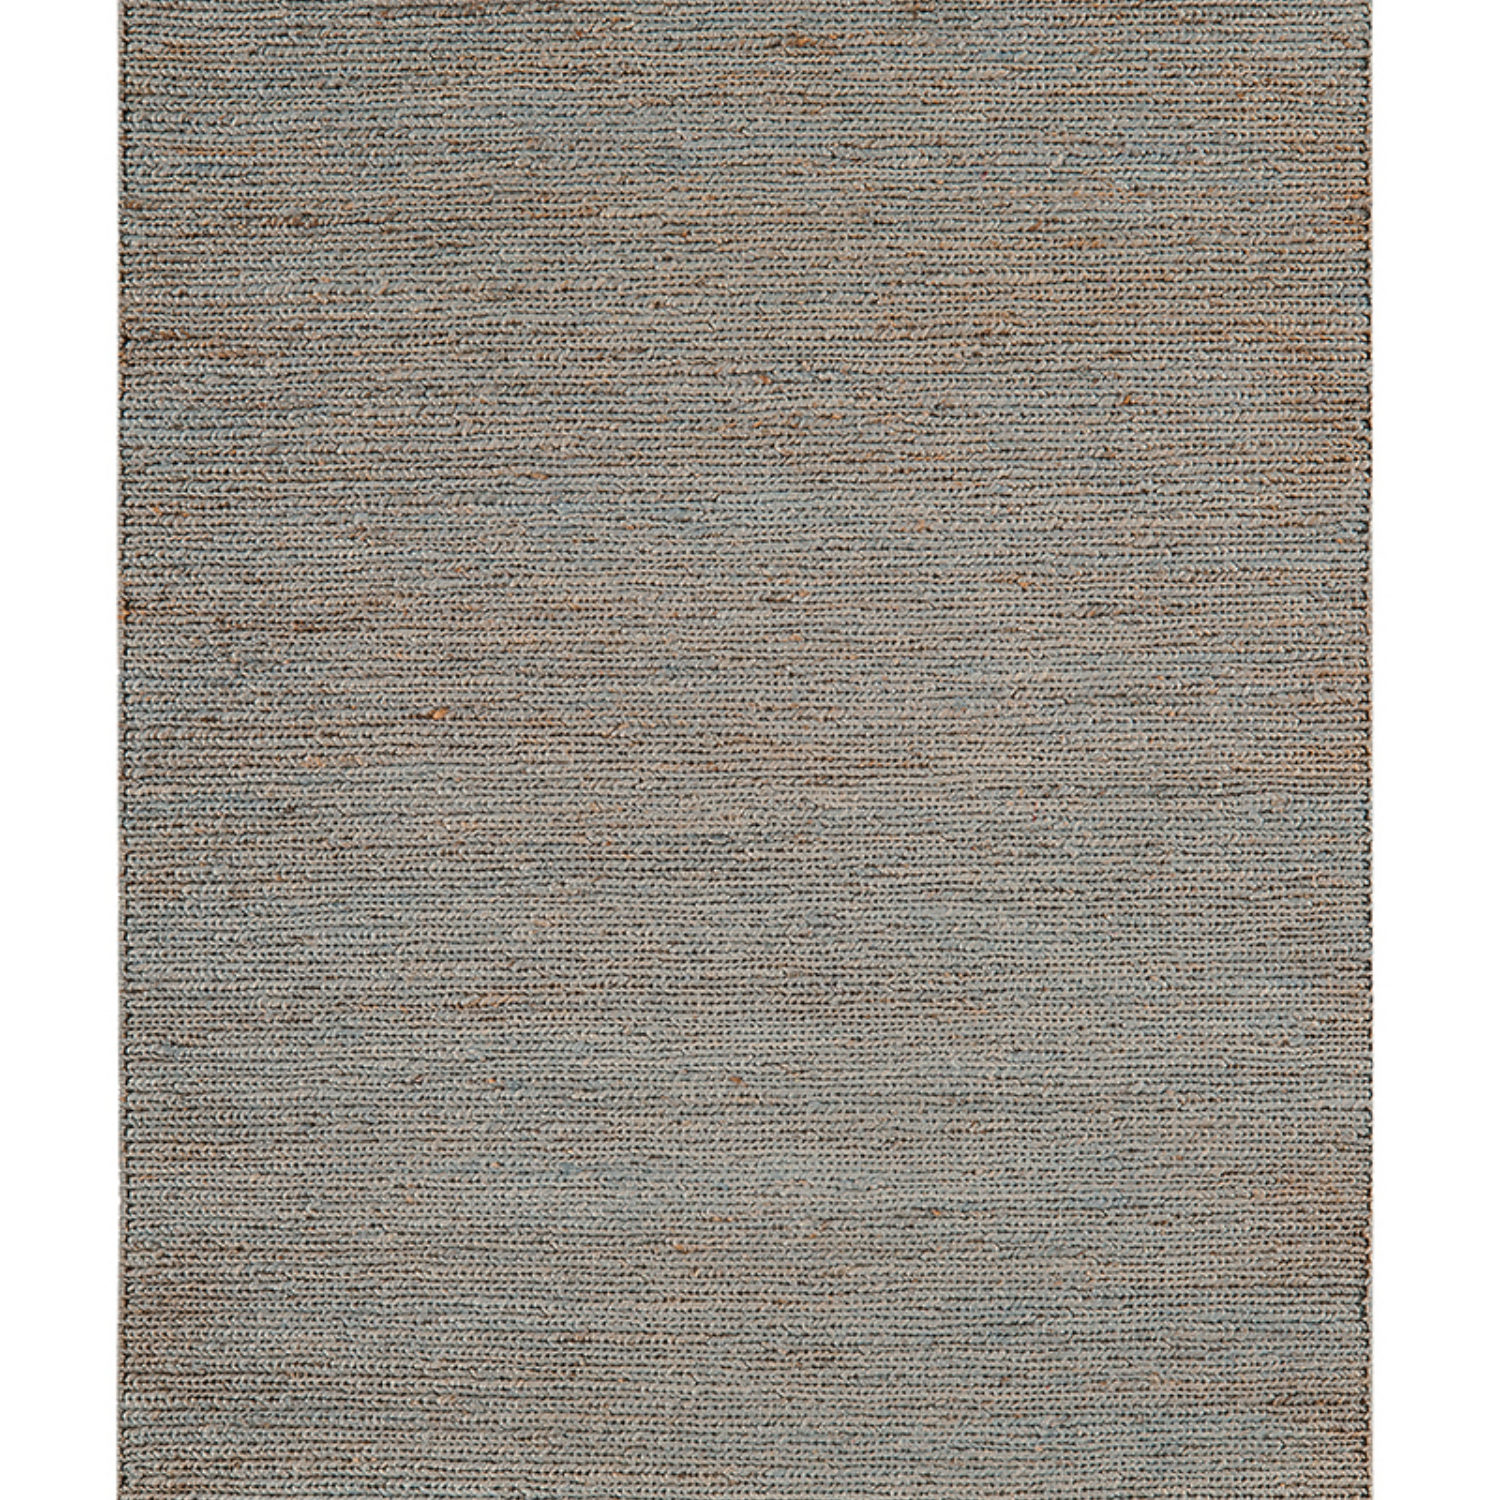 Rustic hand woven juste rug